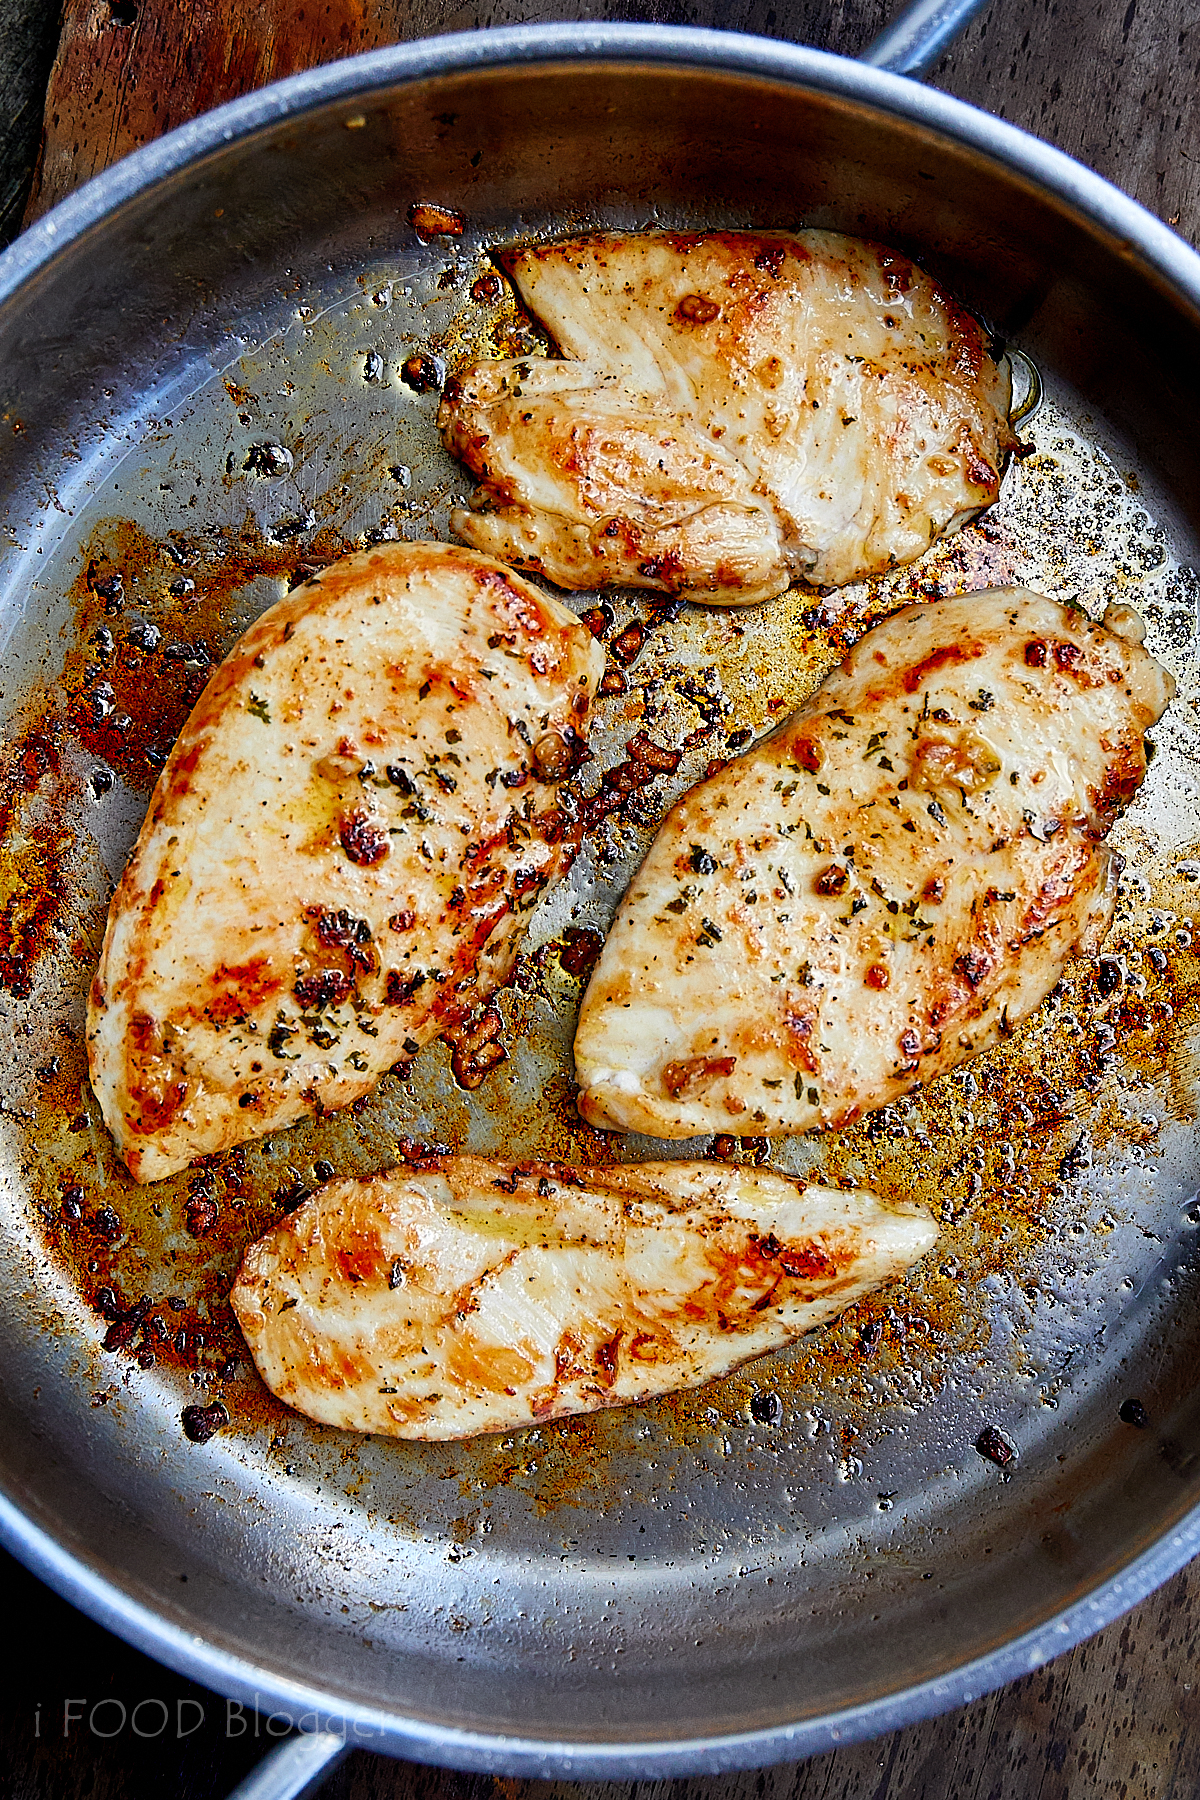 Four golden brown pan-fried chicken breasts in a stainless steel pan.